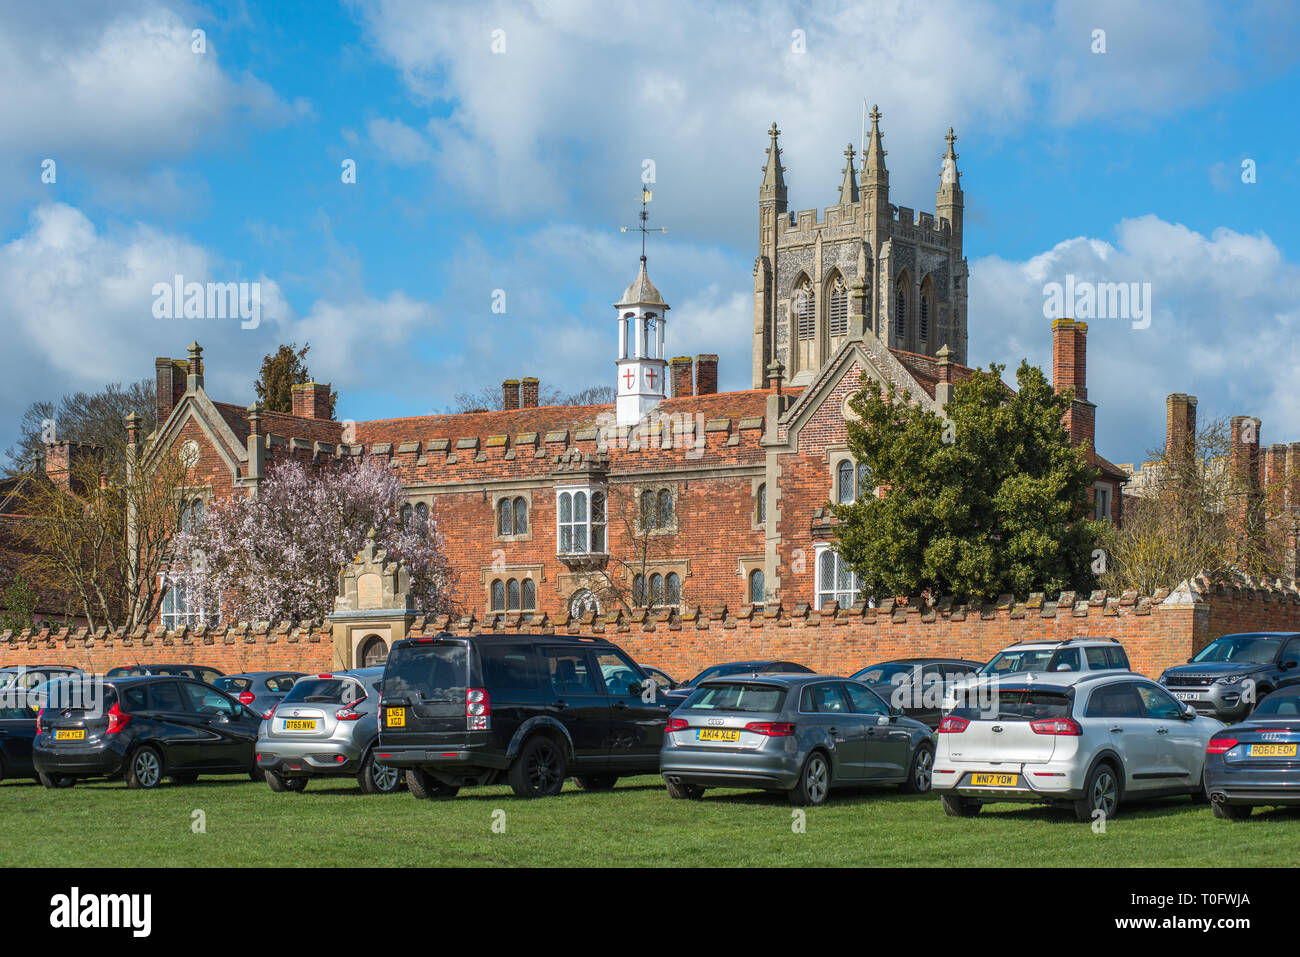 Hospital of the Holy and Blessed Trinity with Holy Trinity Church to the rear, in the village of Long Melford, Suffolk, East Anglia, UK. - Stock Image